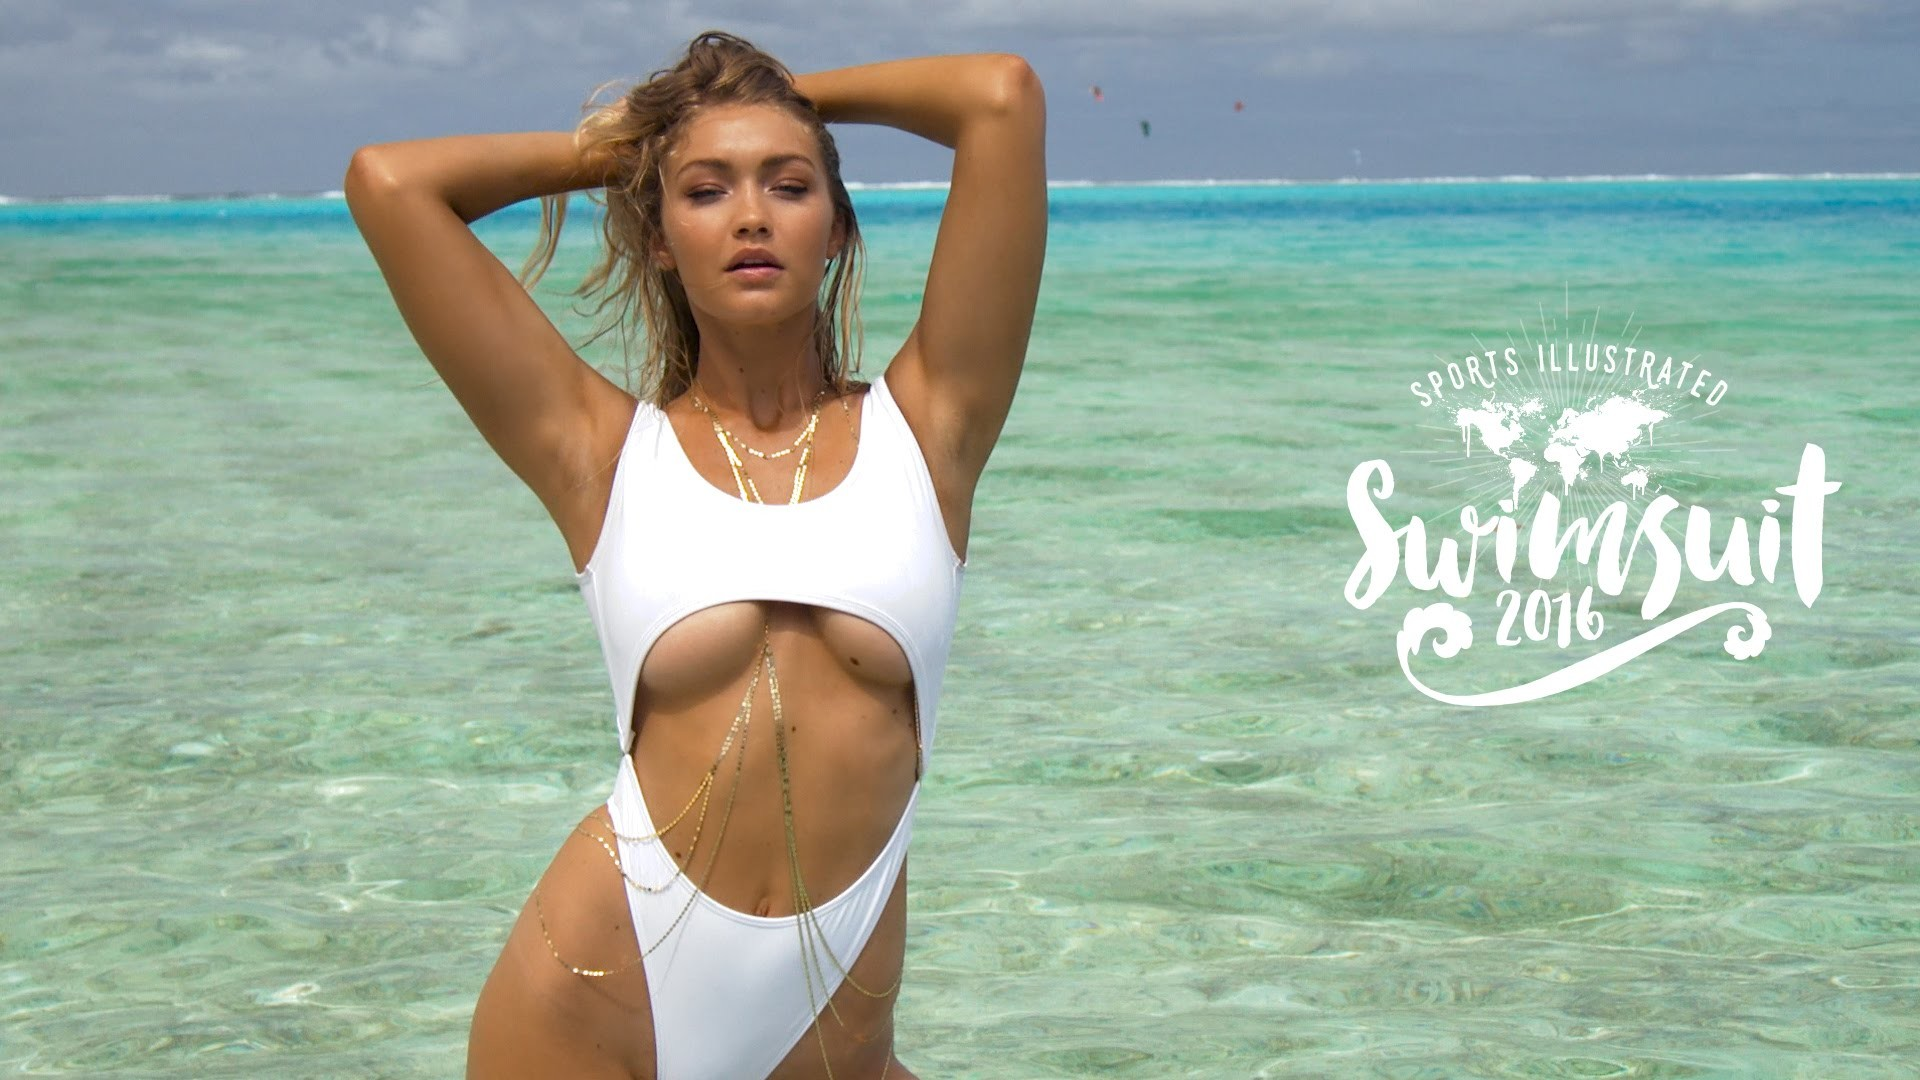 sports illustrated swimsuit wallpaper 1920x1080 183��